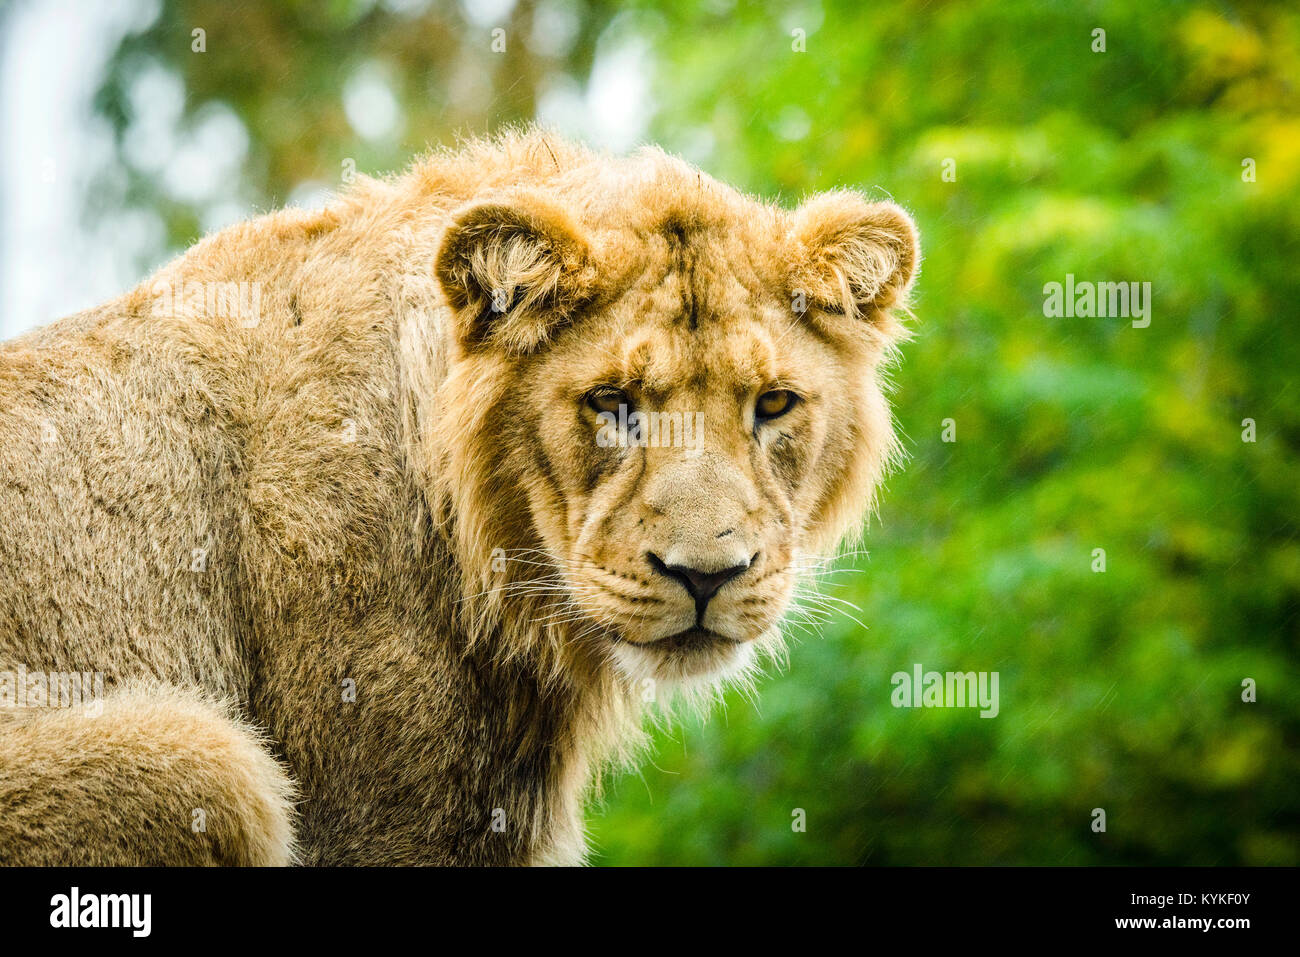 Lion looking hungry in the rain with green nature in the background - Stock Image